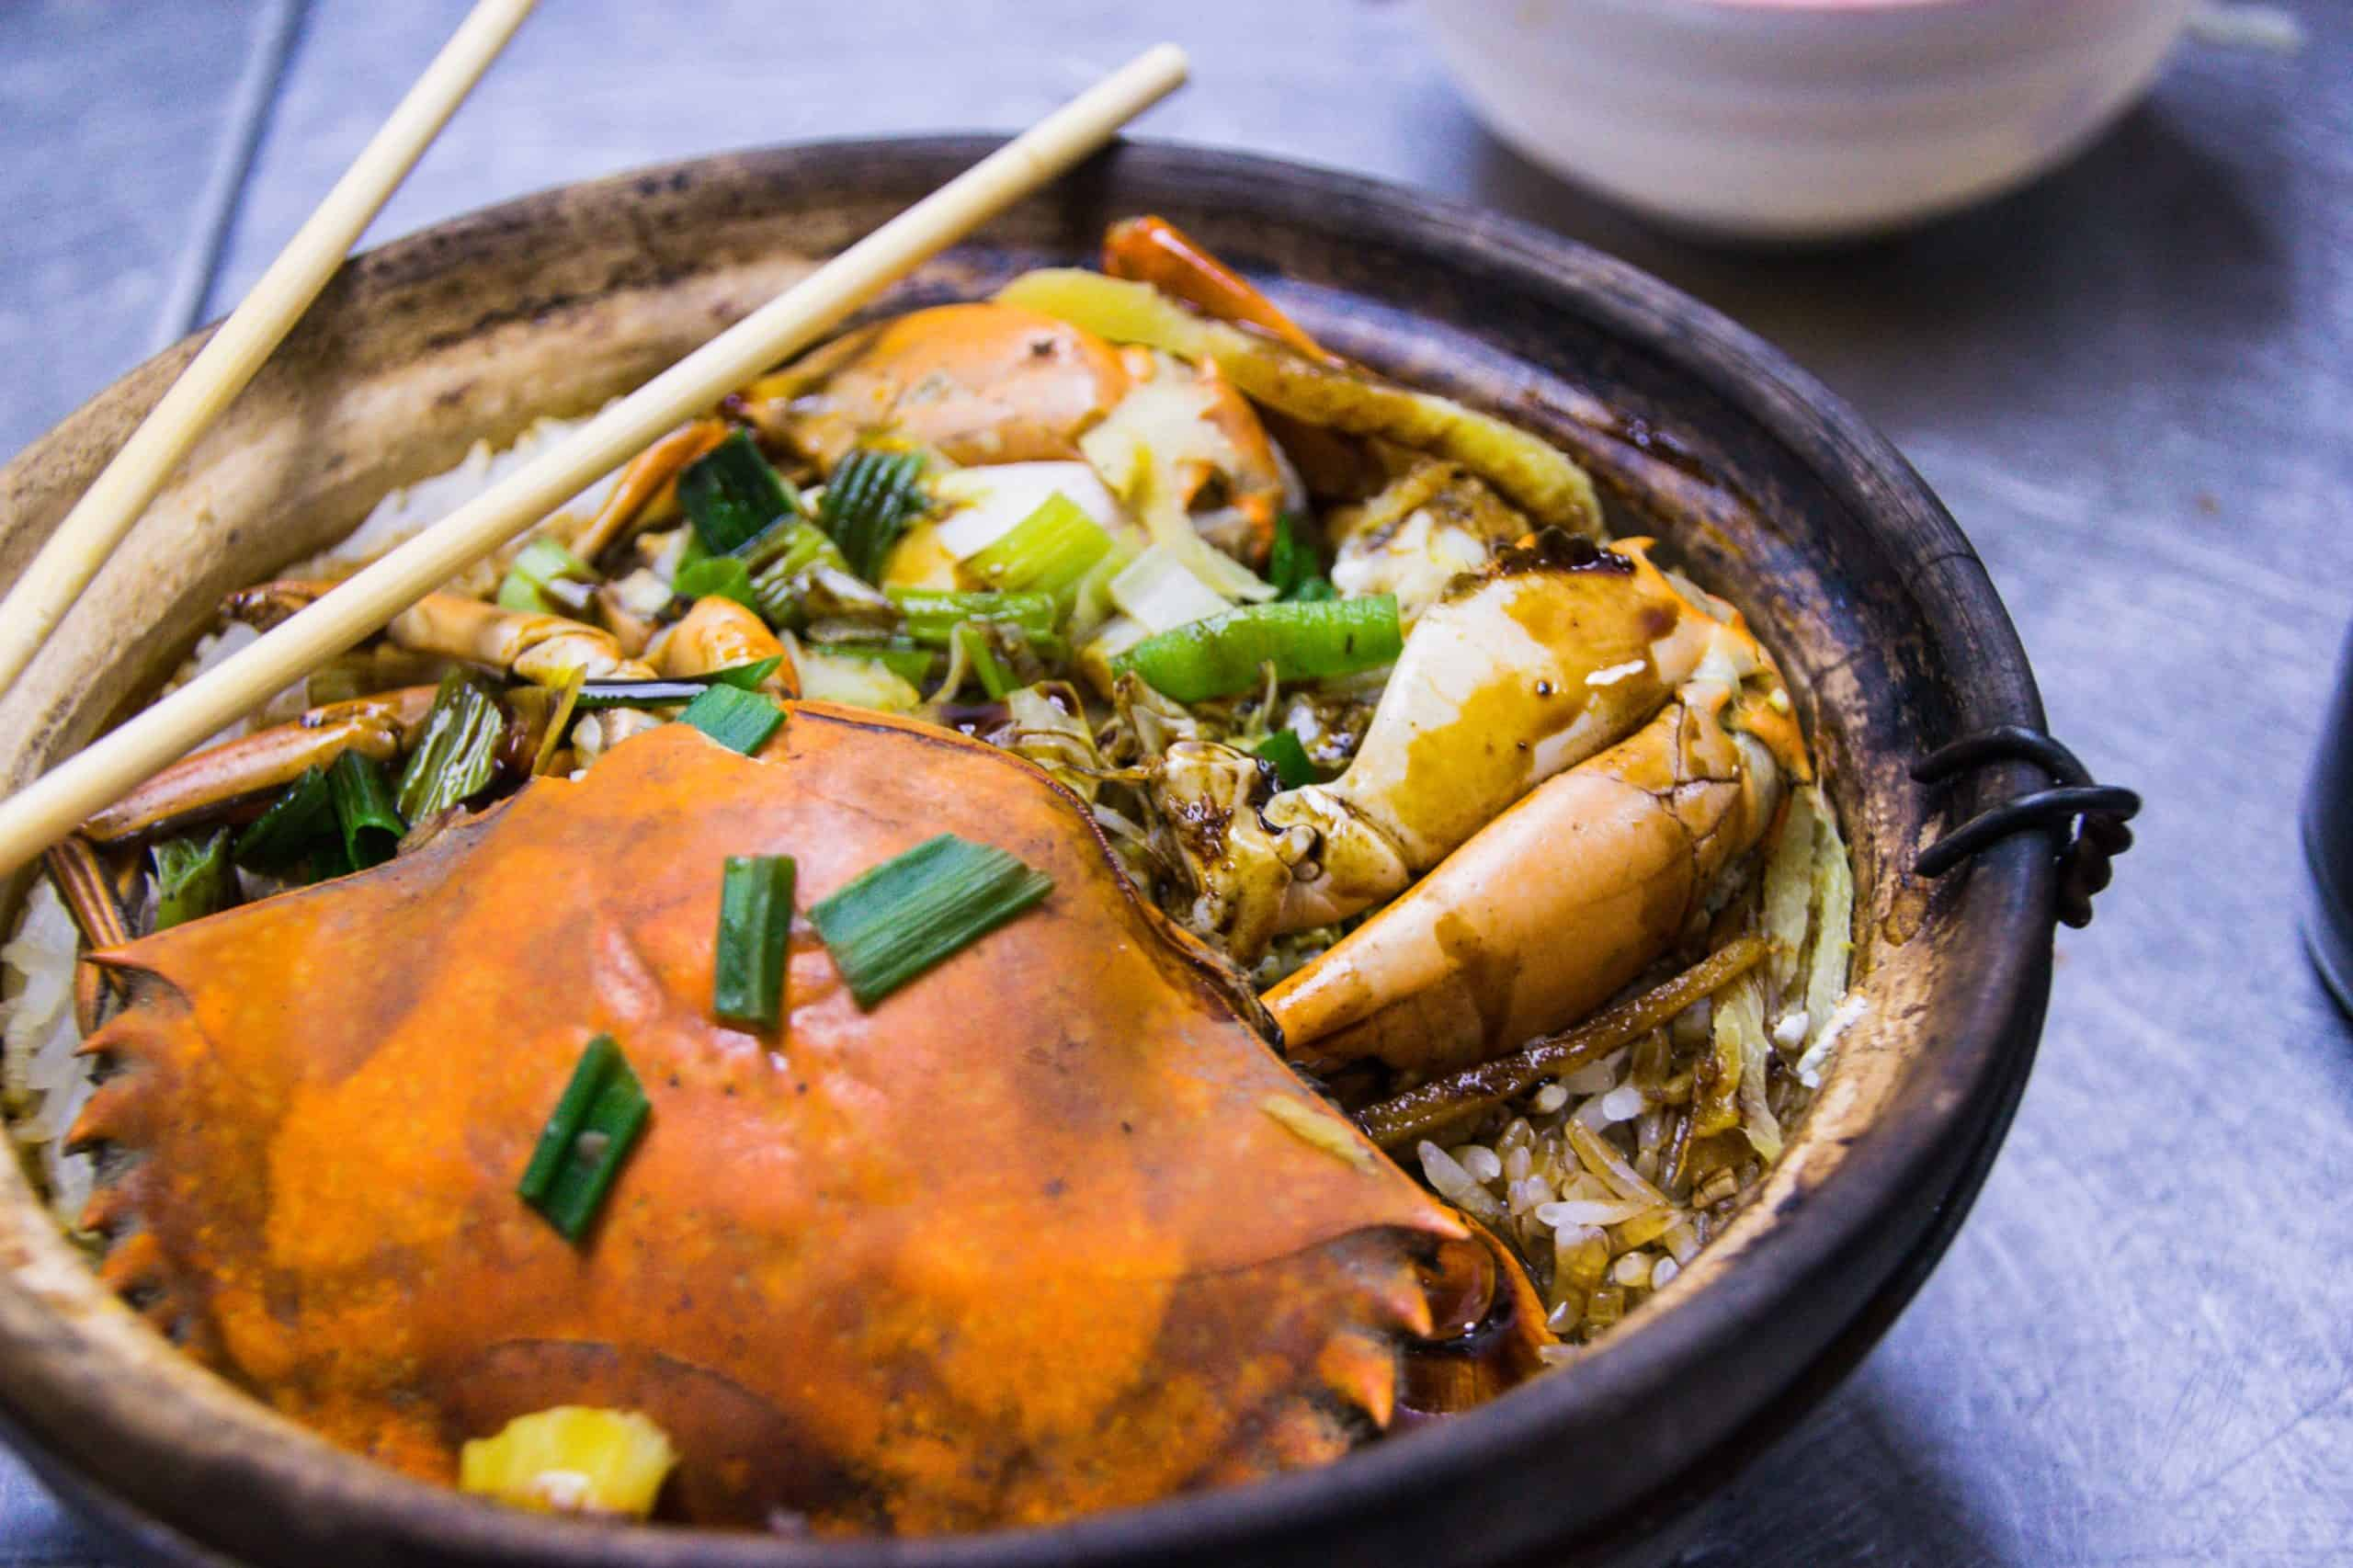 The 8 Kinds Of Distinctive Cuisines In China